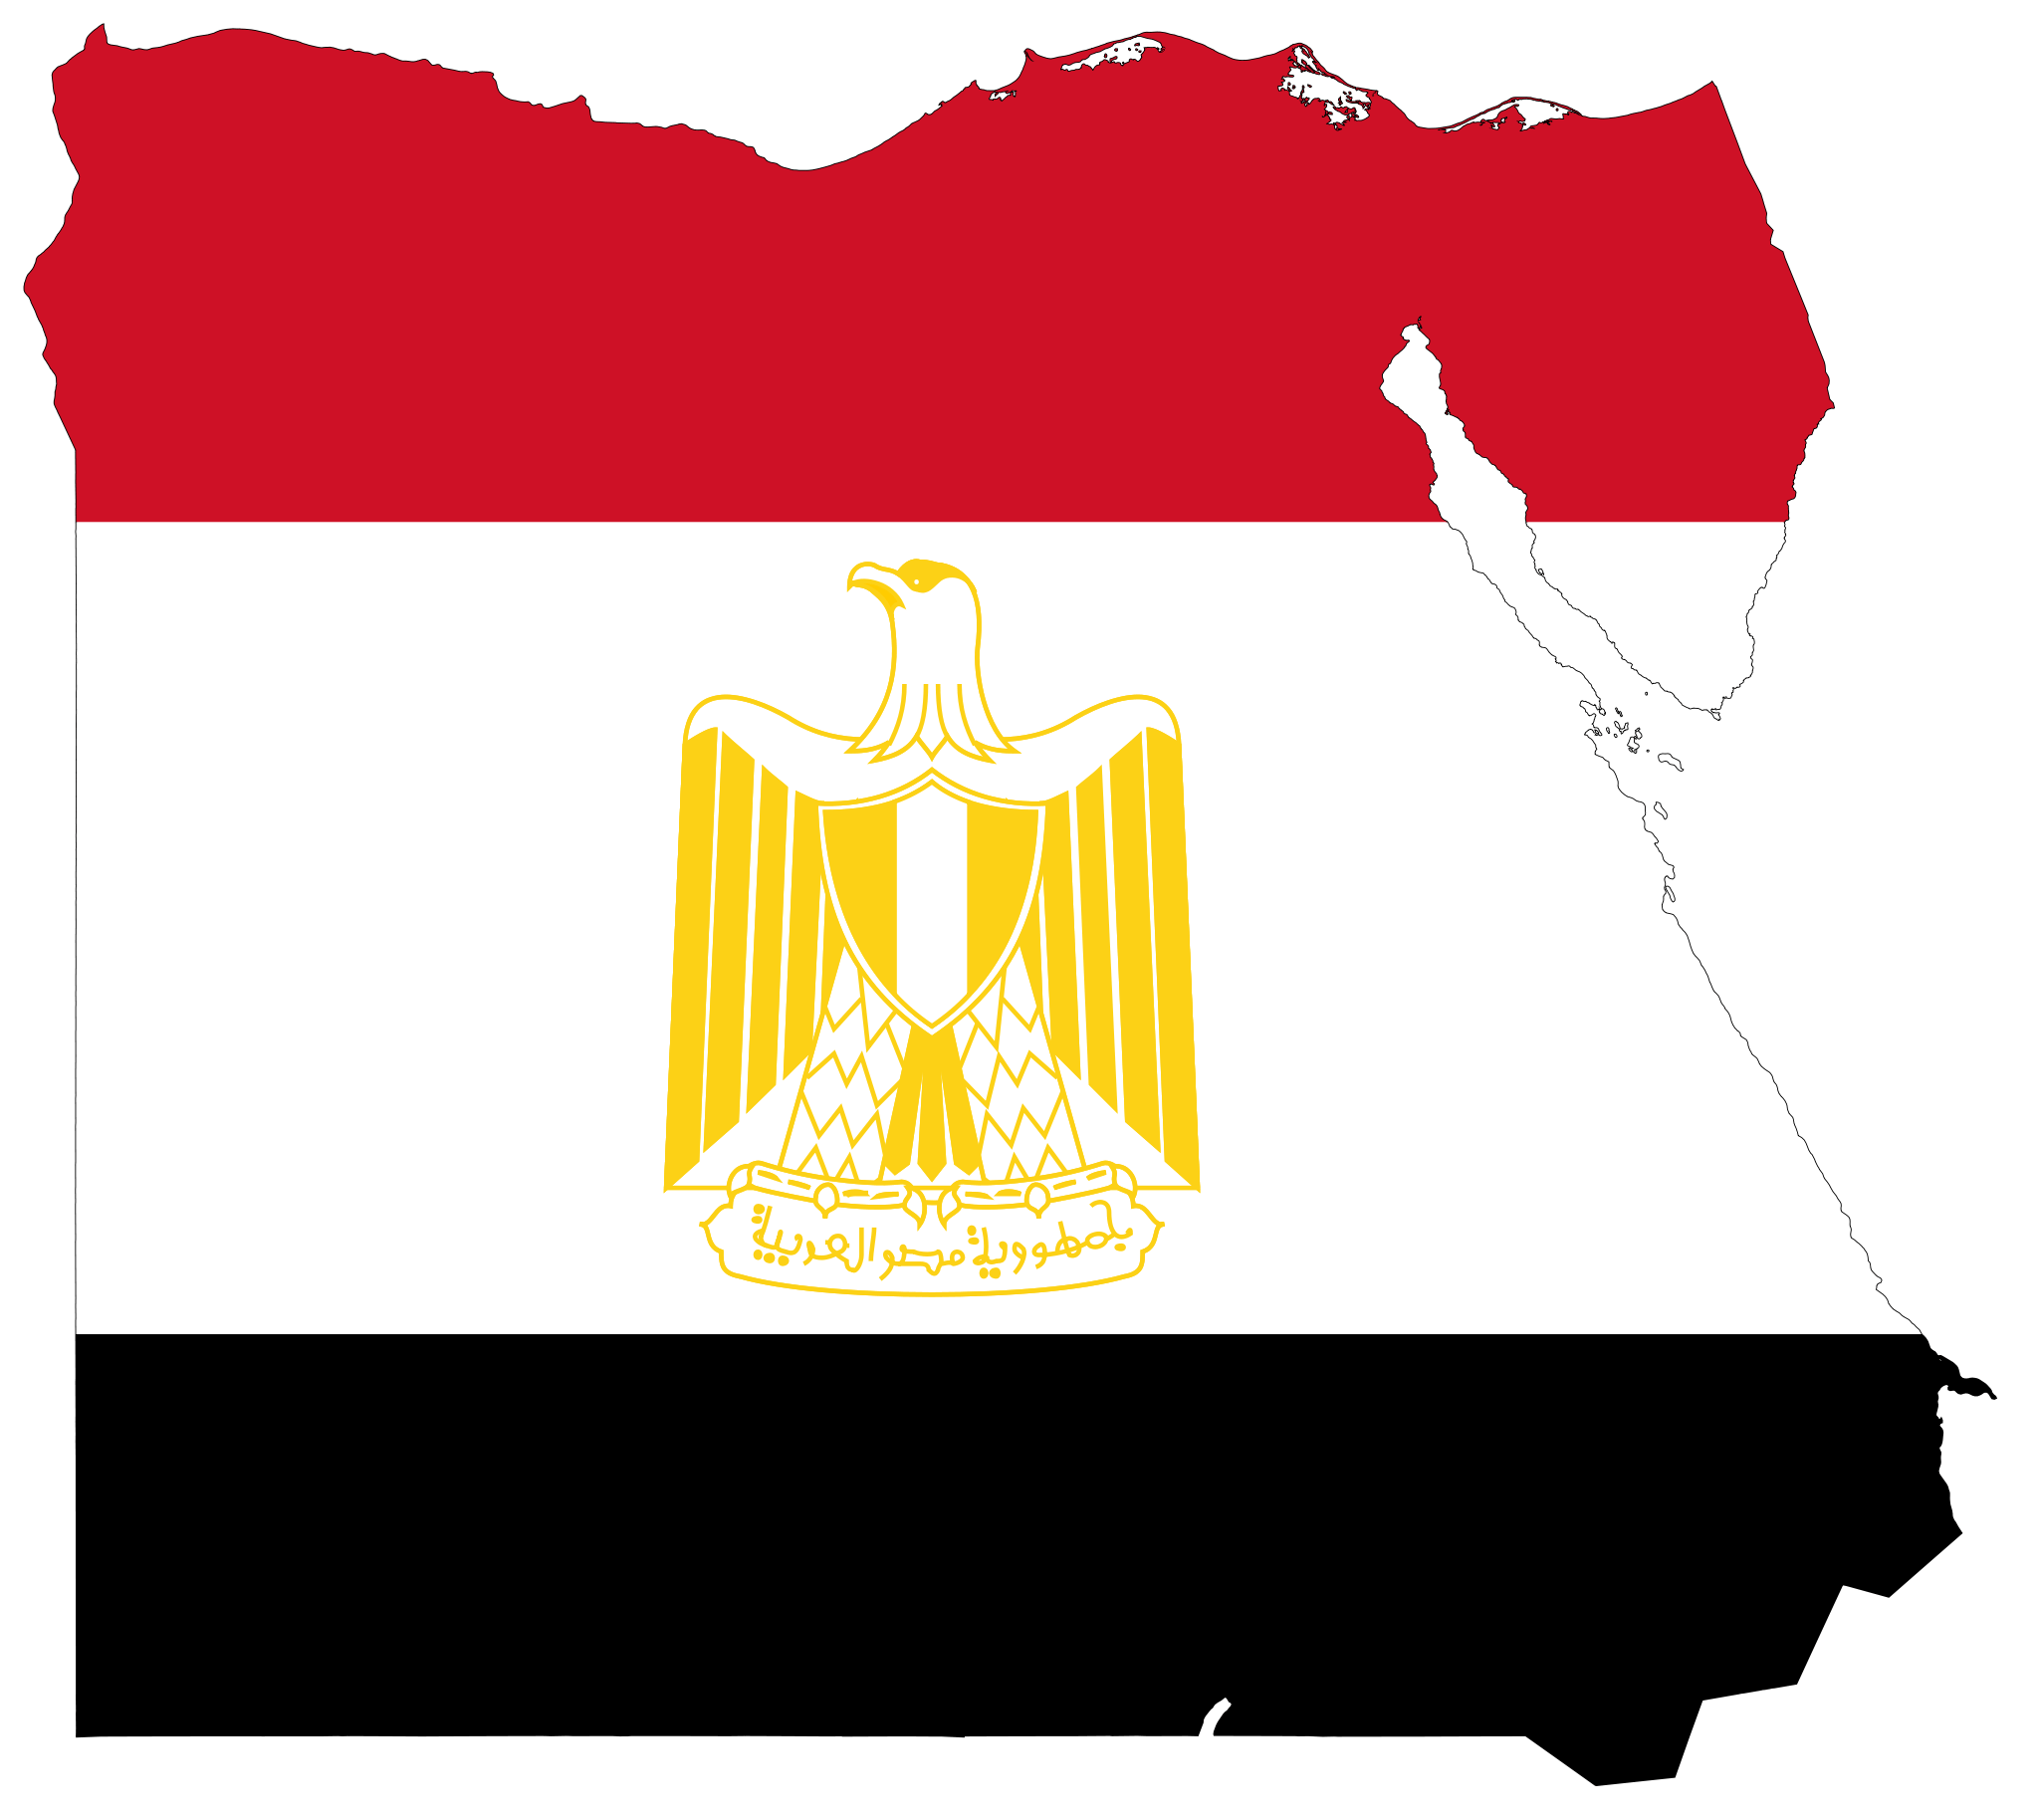 Flags Of The World Buy Egypt Flag Buy Flags, Bunting, Every ...